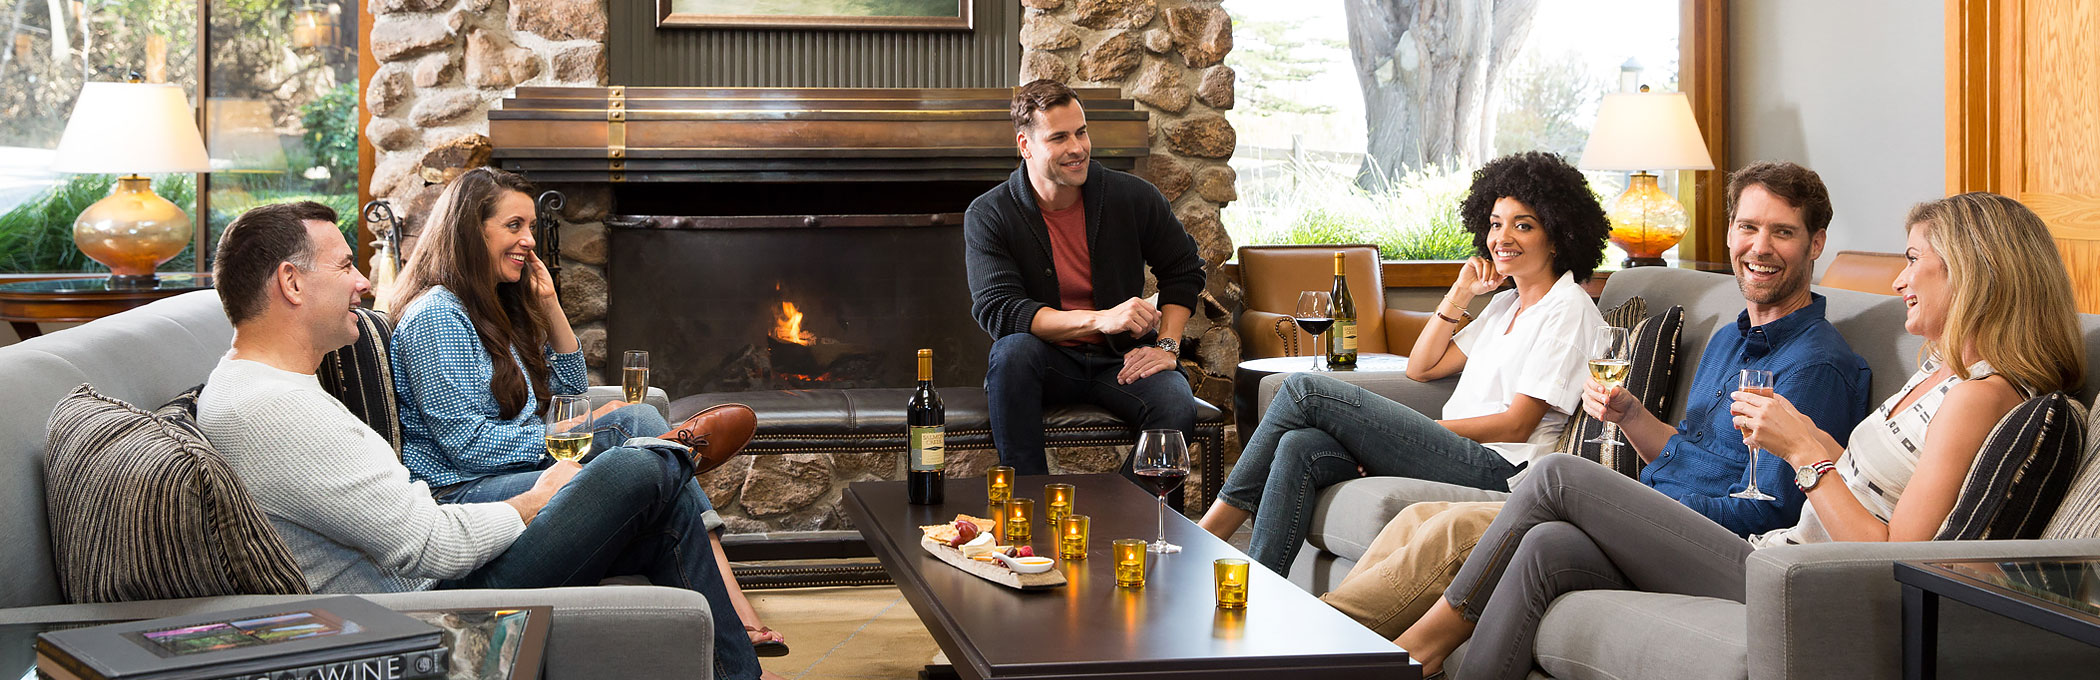 Group of friends gathered in living space drinking wine by fireplace